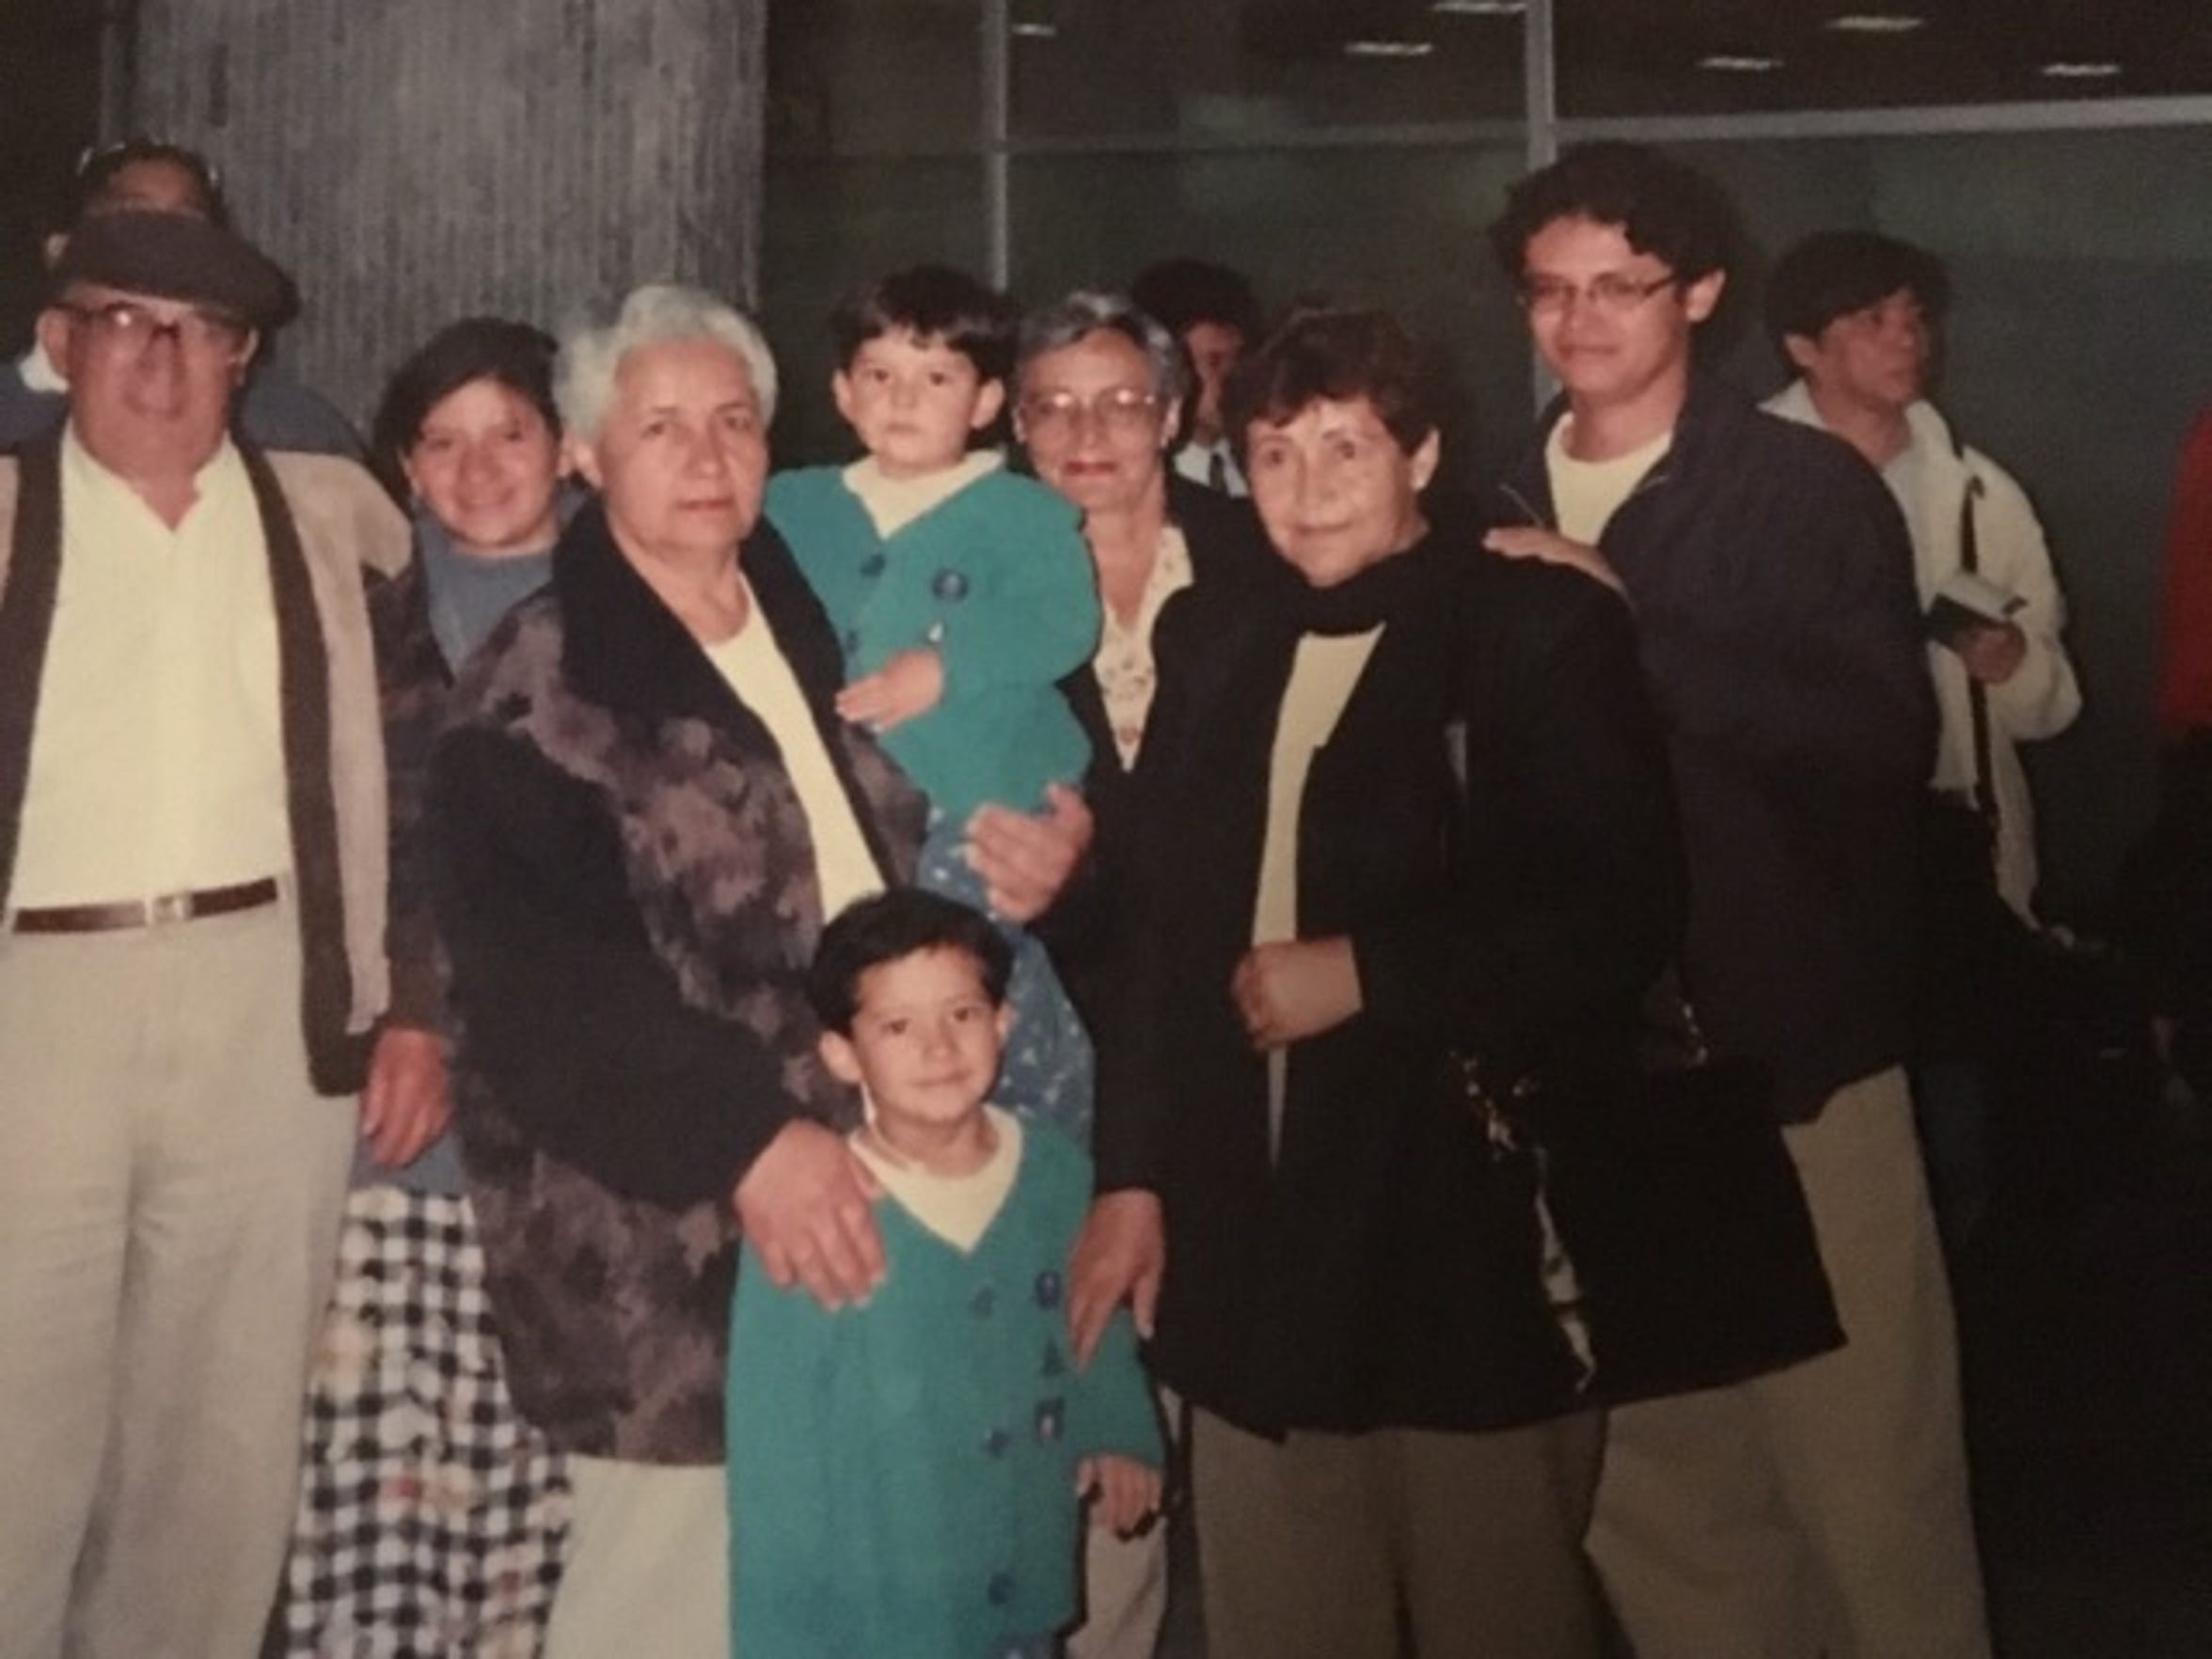 The whole extended family surrounds the Rodriguez family at the airport before they immigrate to the U.S.